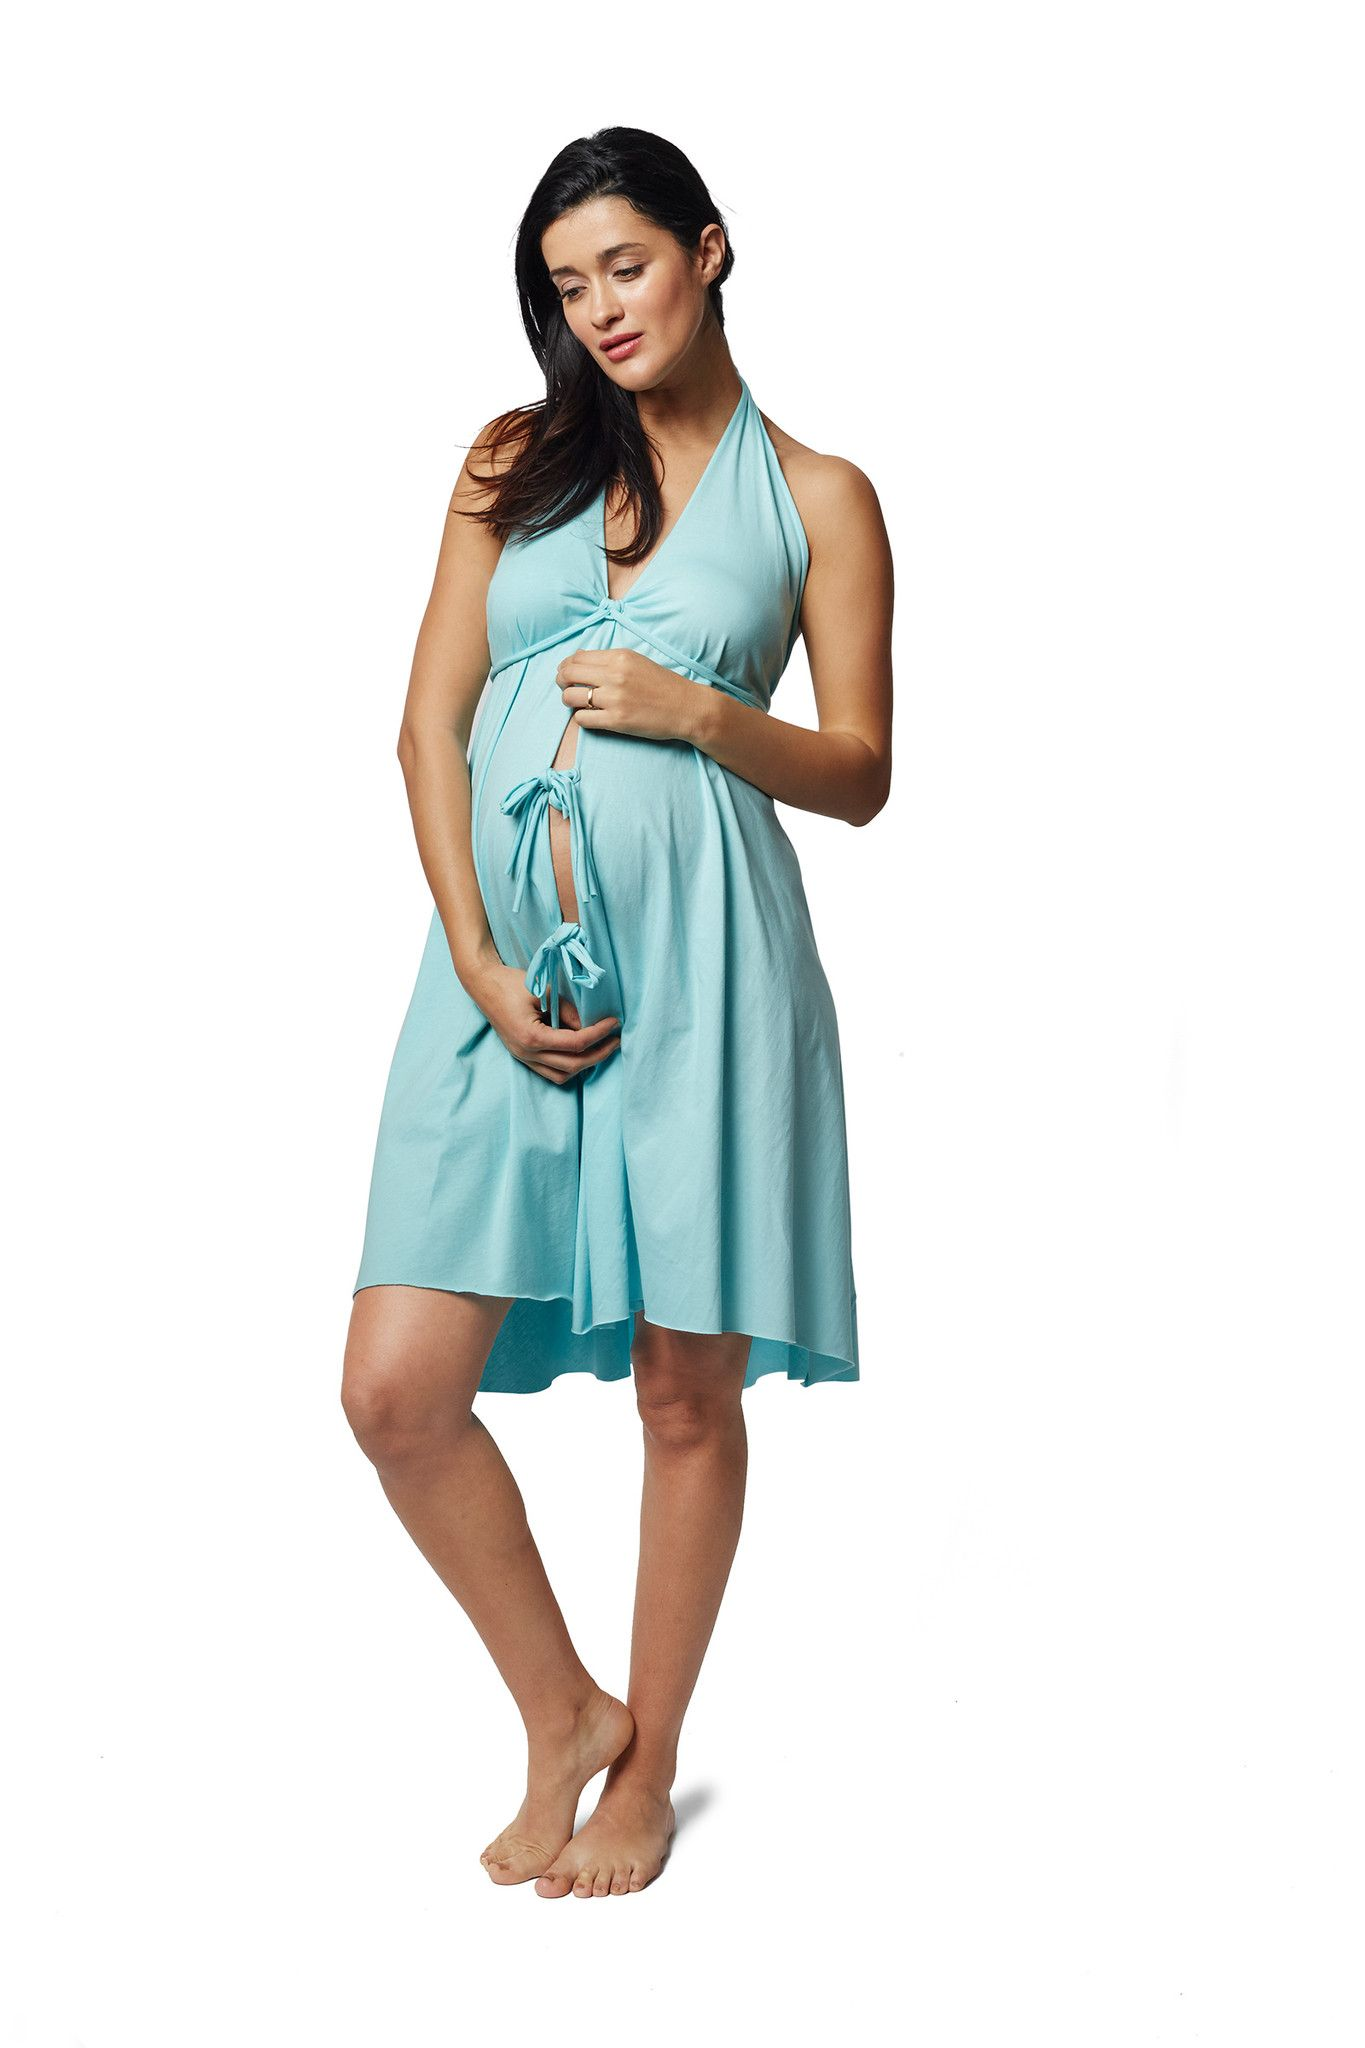 Original Labor & Delivery Gowns | Delivery gown, Labour and Baby ...